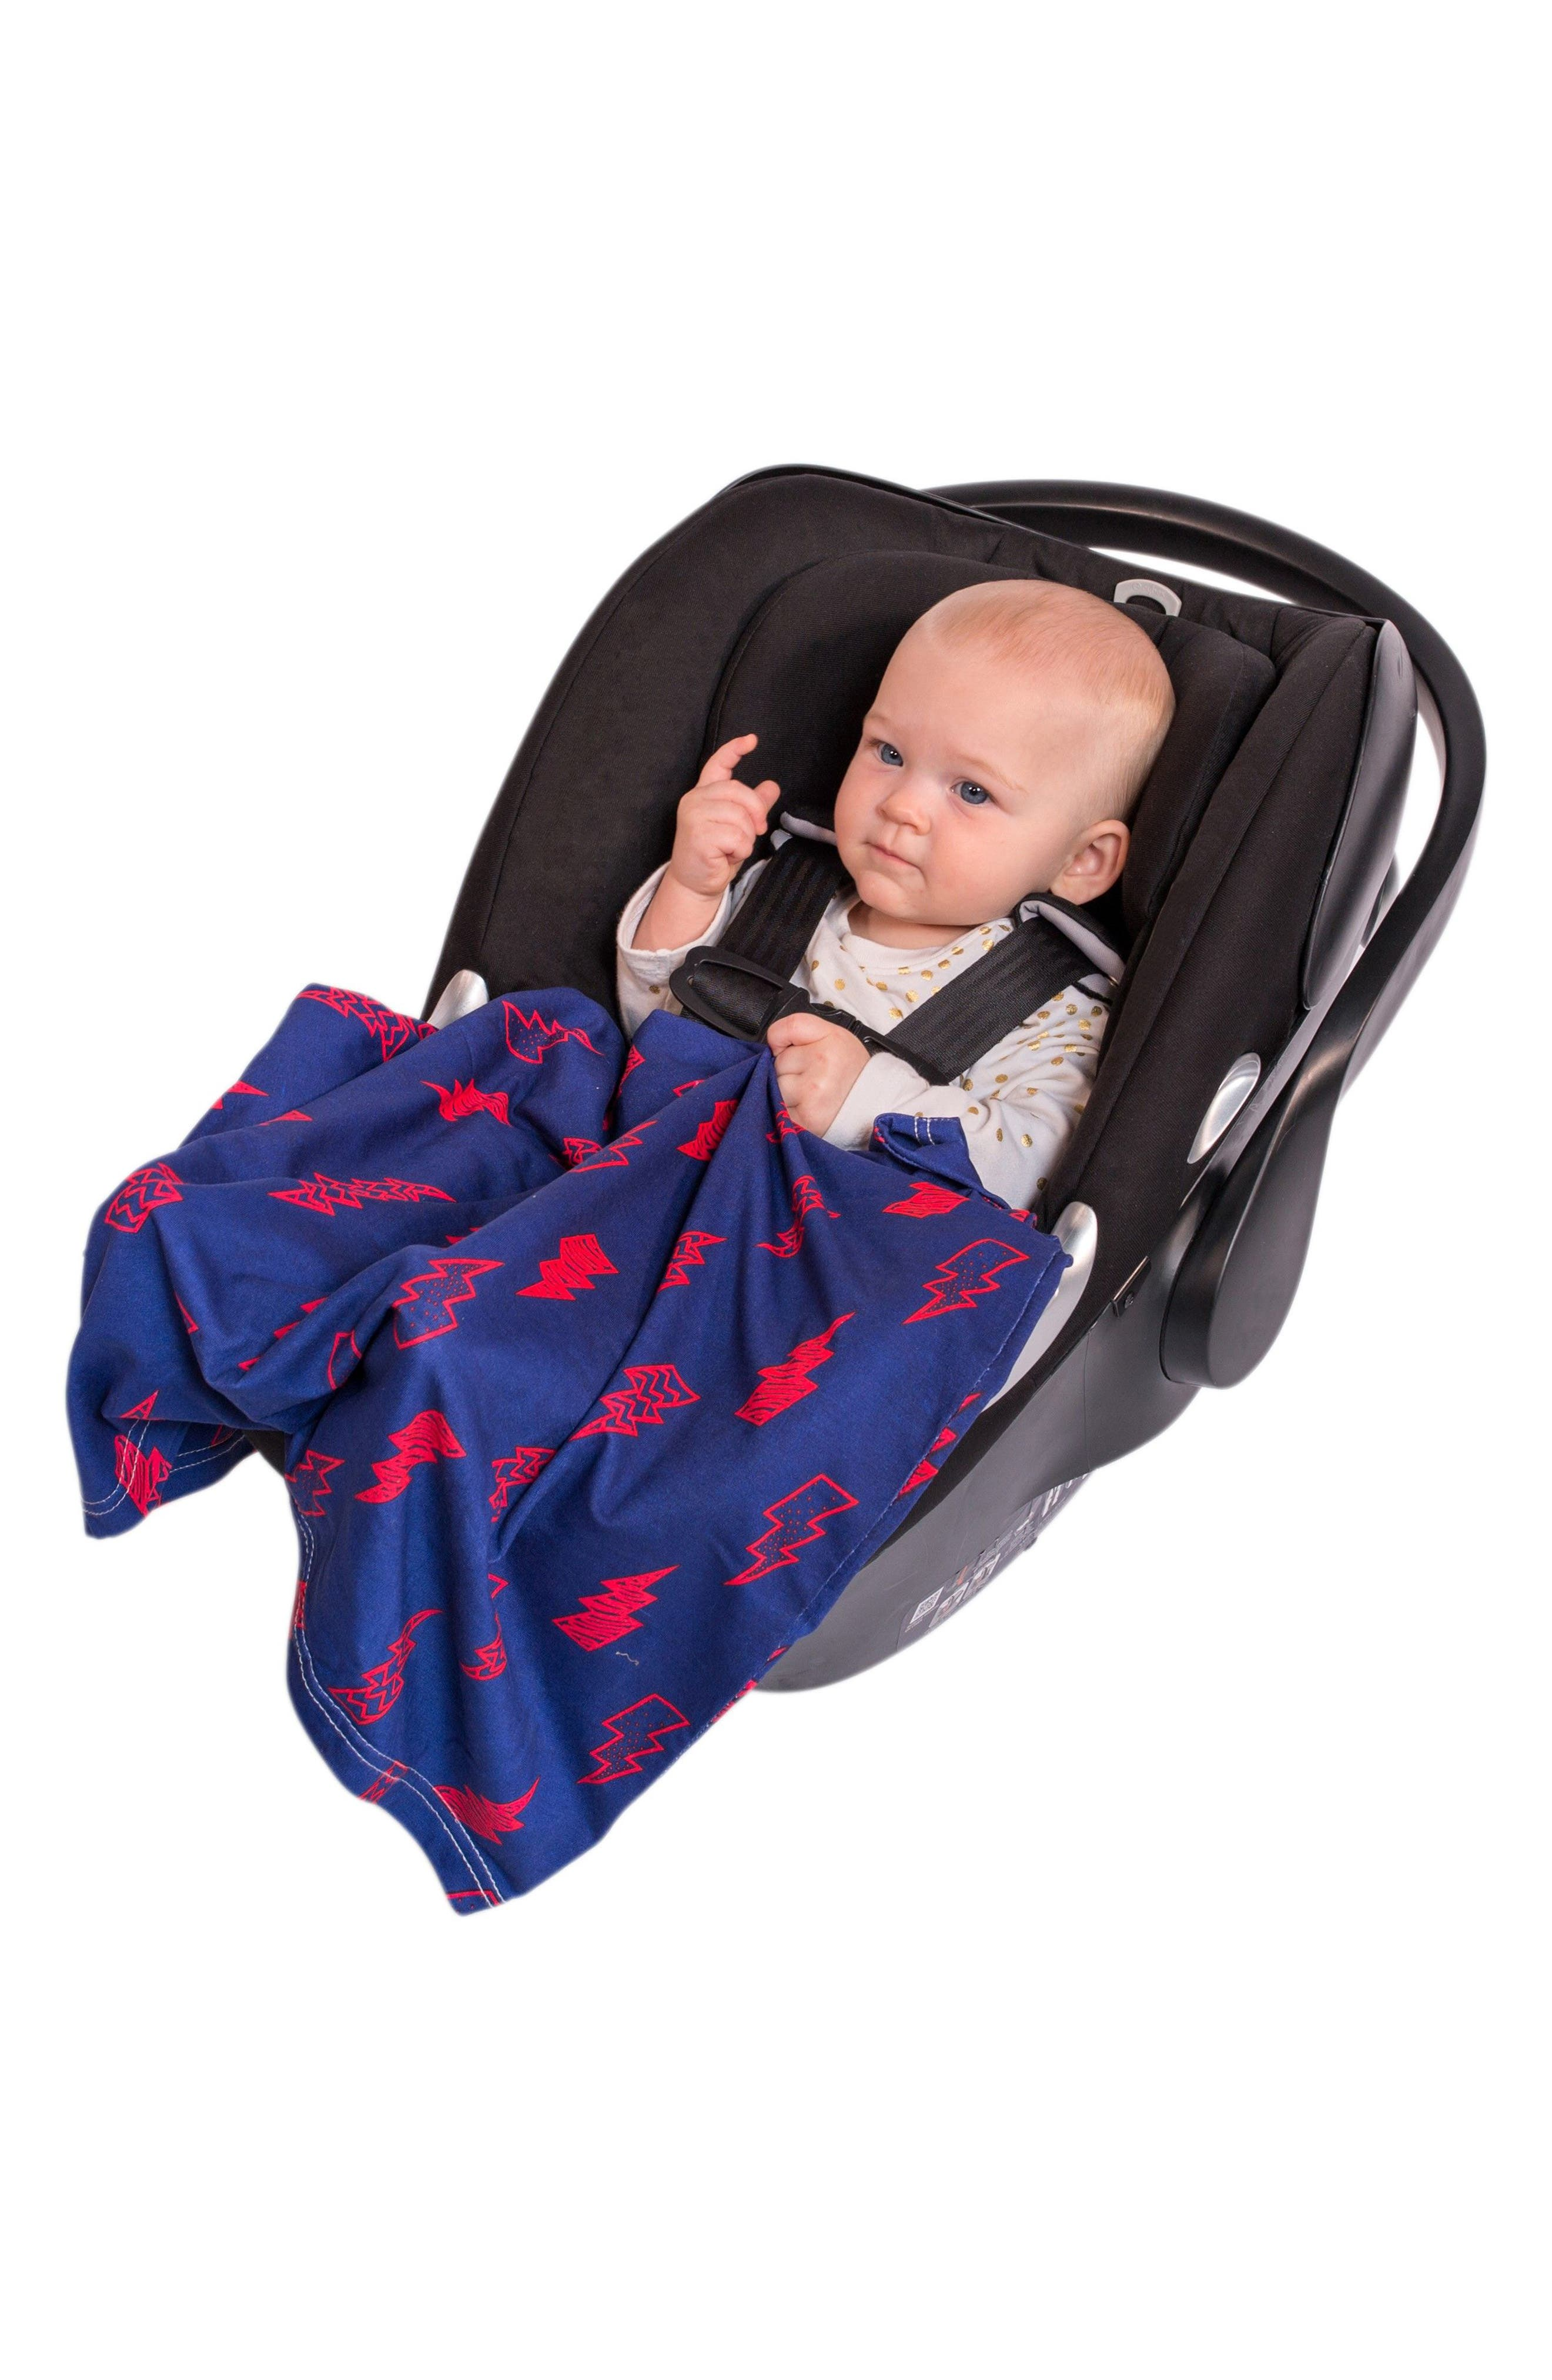 5-in-1 Car Seat Cover,                             Alternate thumbnail 6, color,                             BLUE/ RED LIGHTNING BOLTS